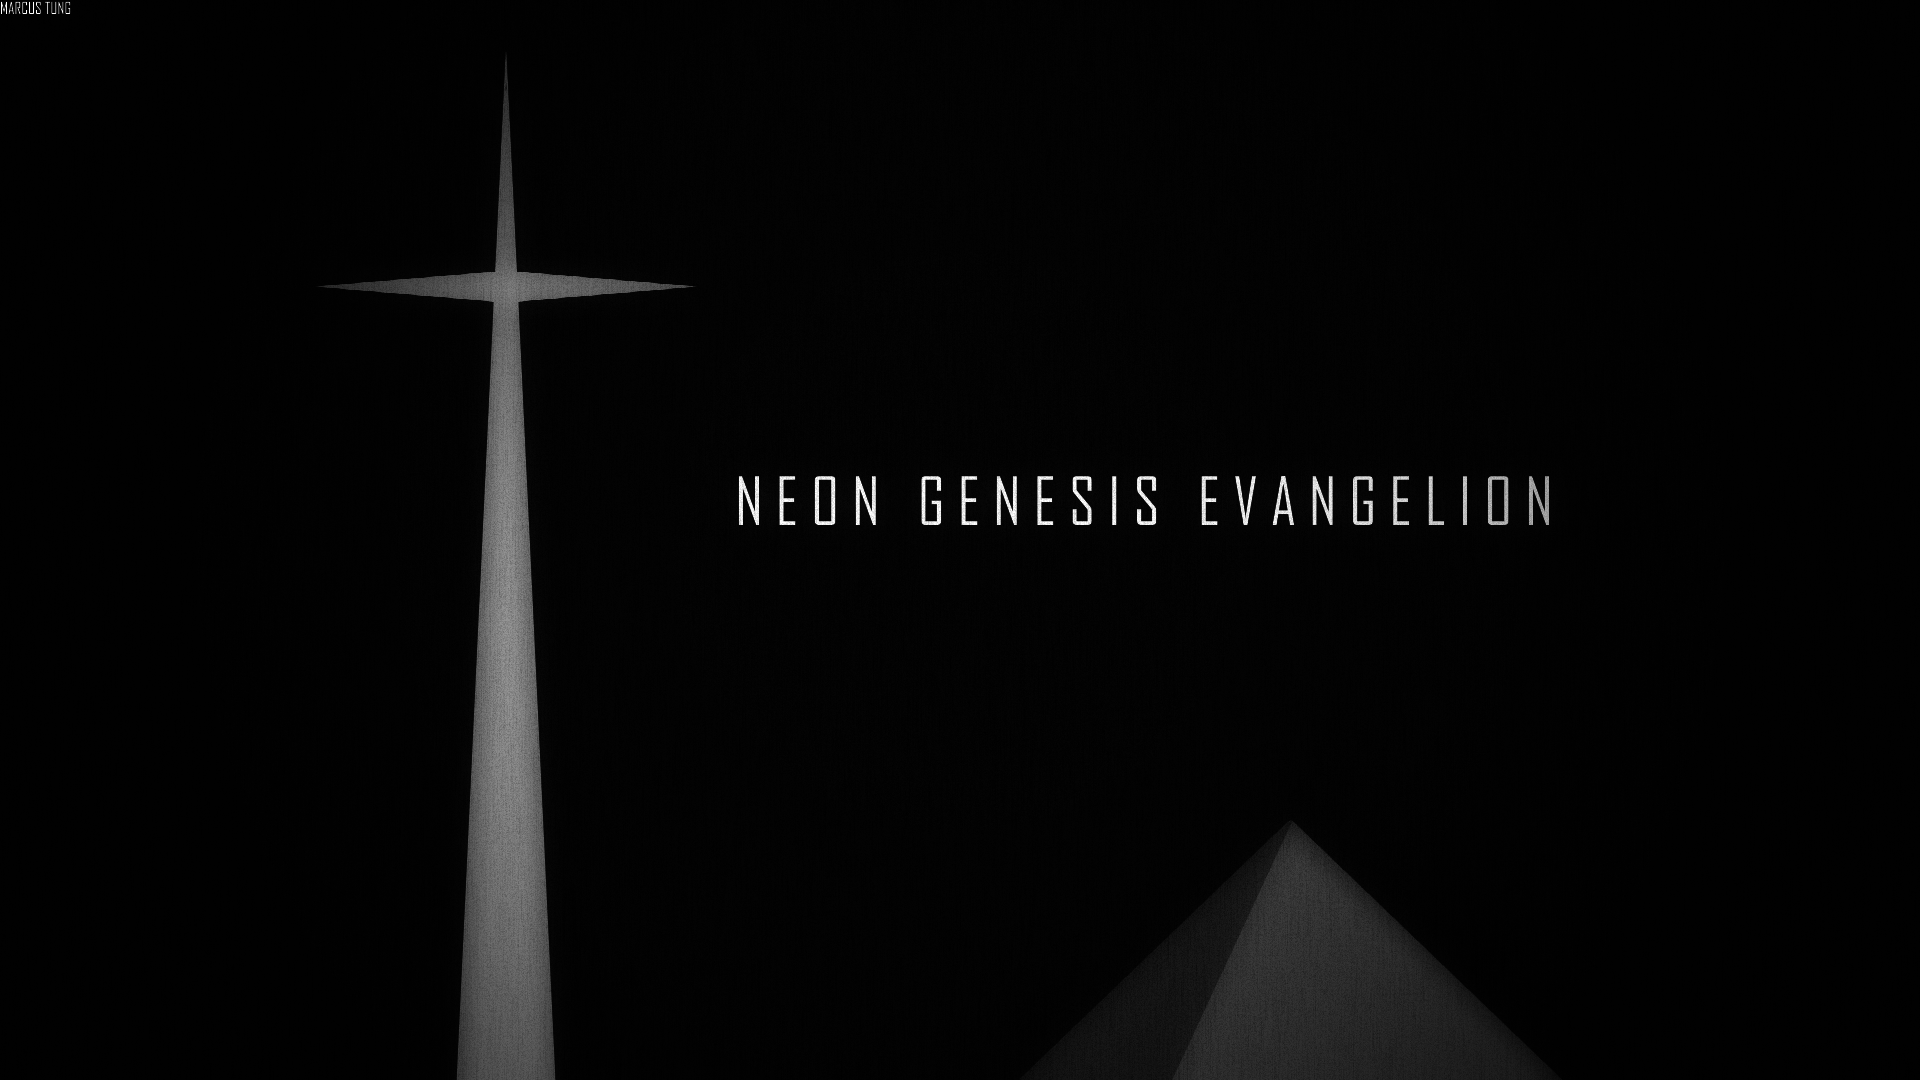 Neon Genesis Evangelion HD Wallpaper | Background Image | 1920x1080